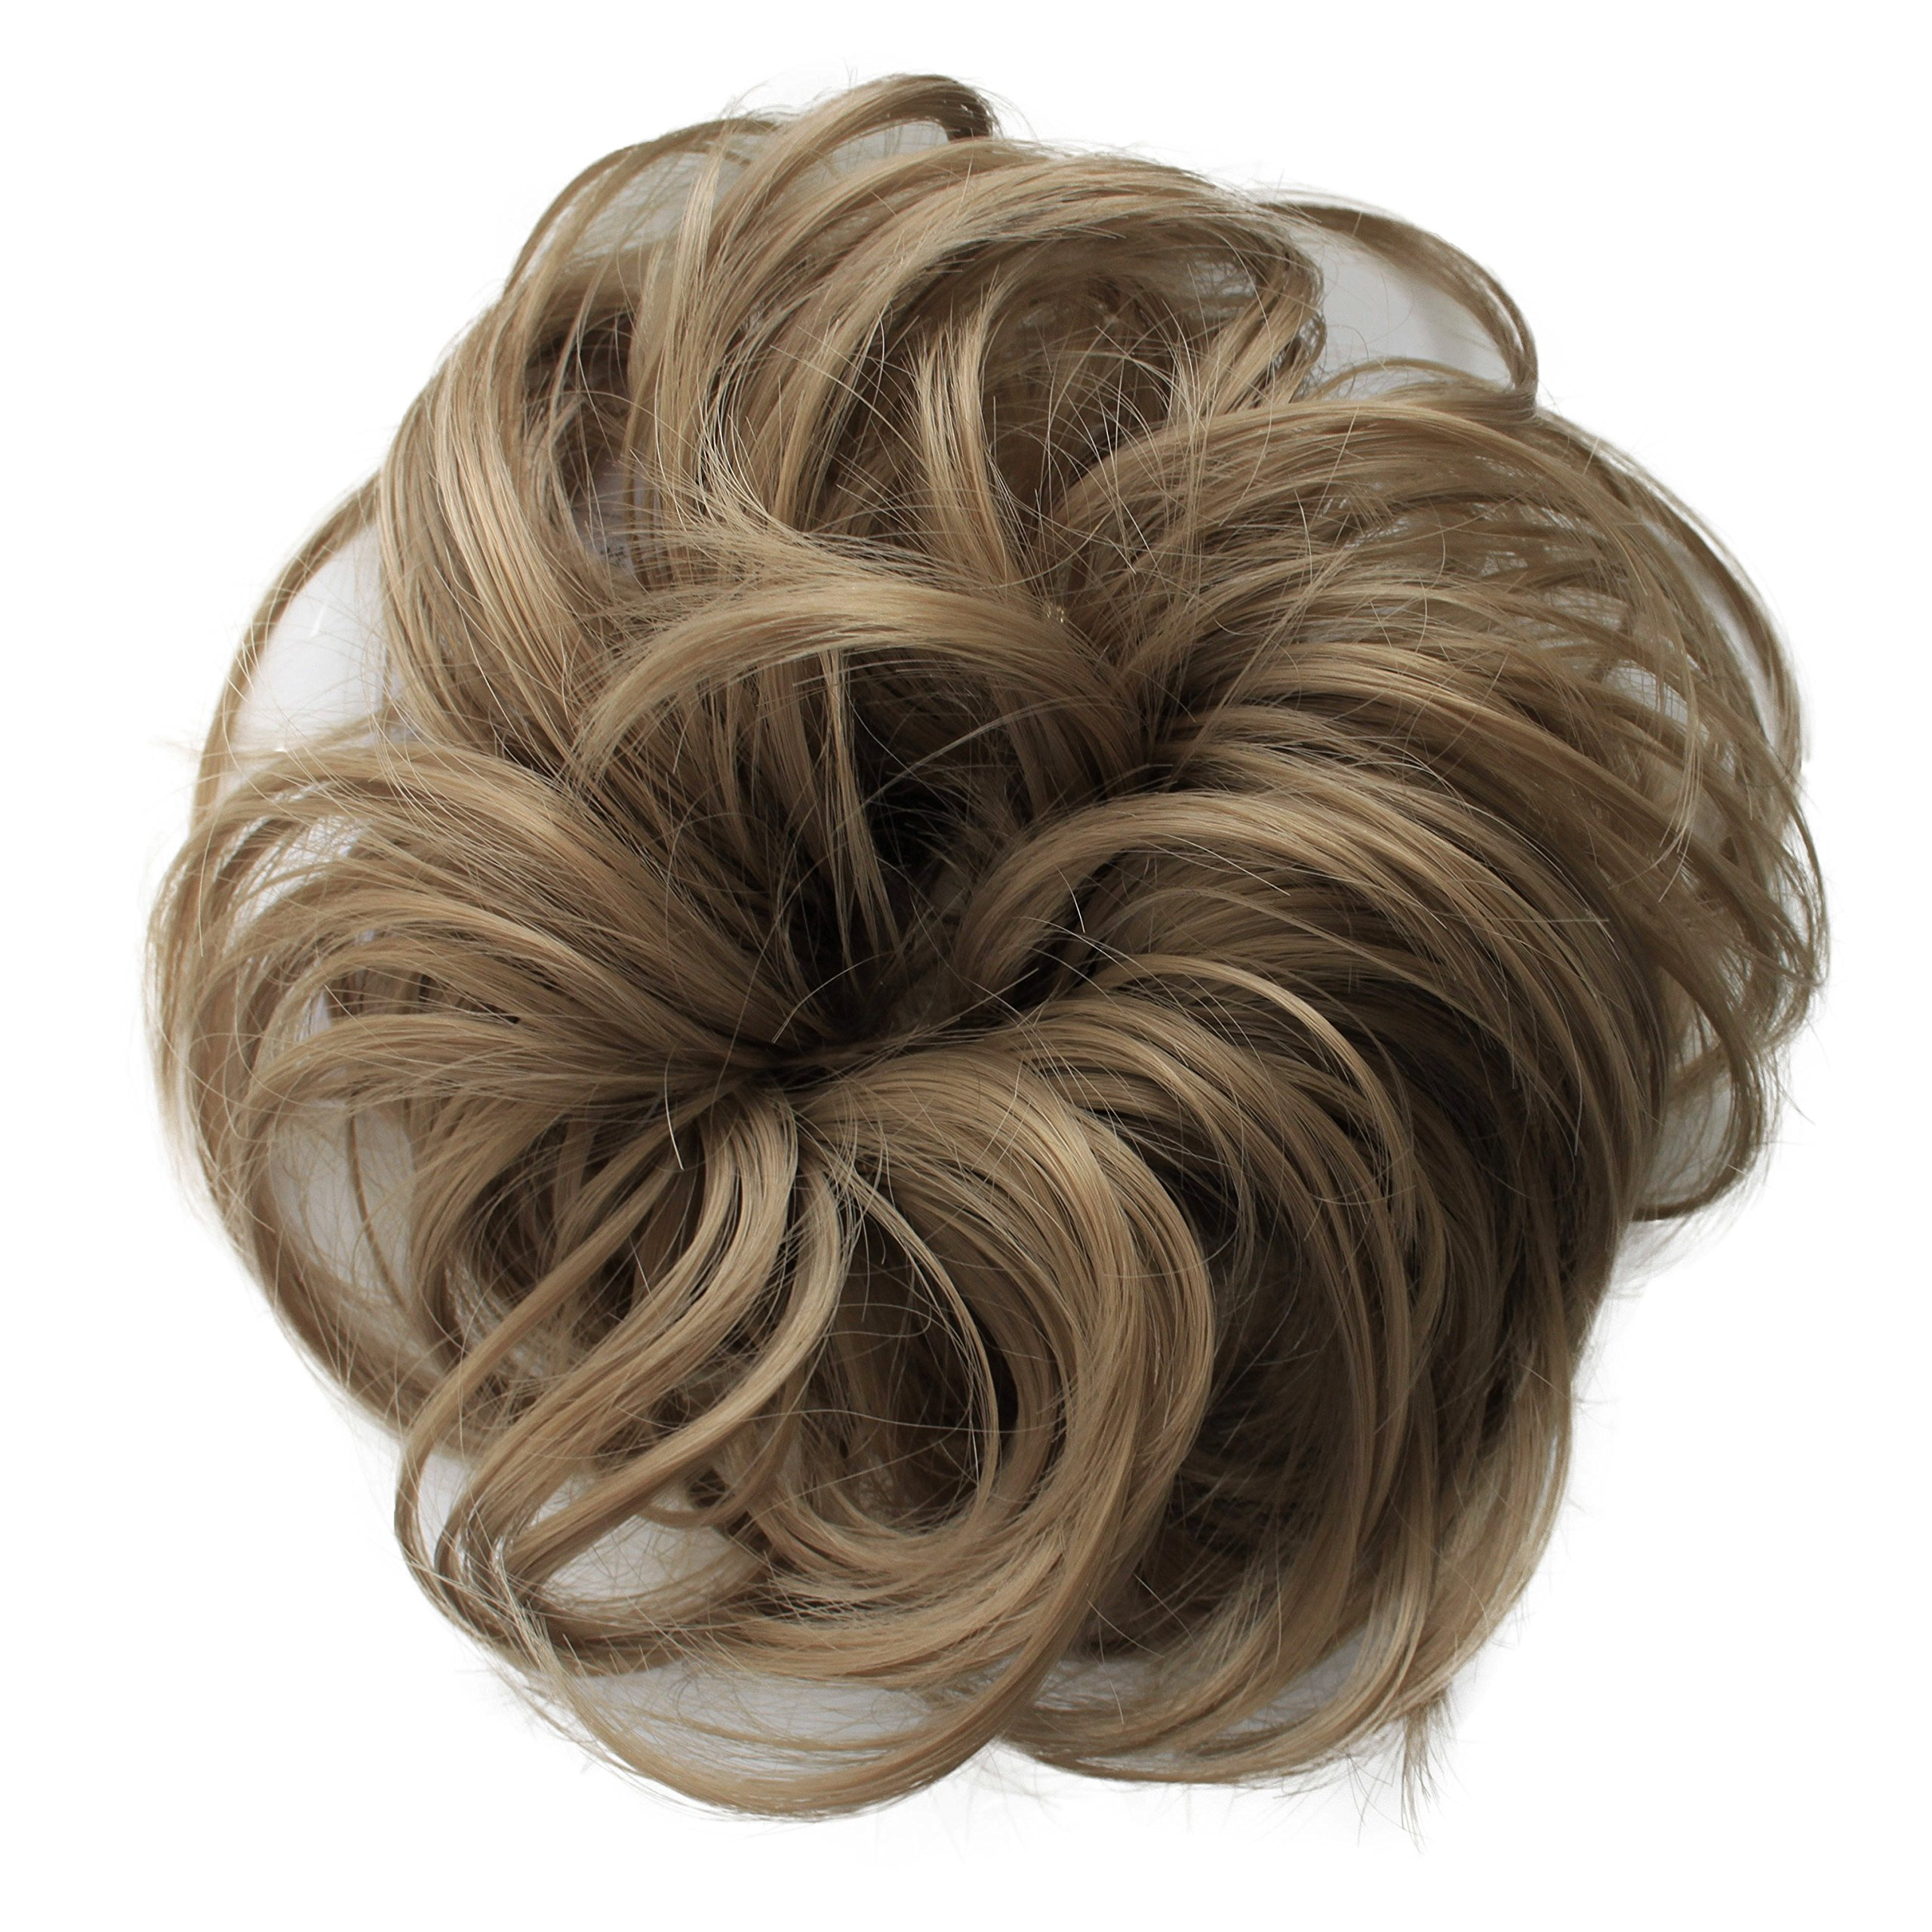 PRETTYSHOP Hairpiece Scrunchie Bun Up Do | Ponytail Extensions | Wavy Curly or Messy (Natural Blonde 16)